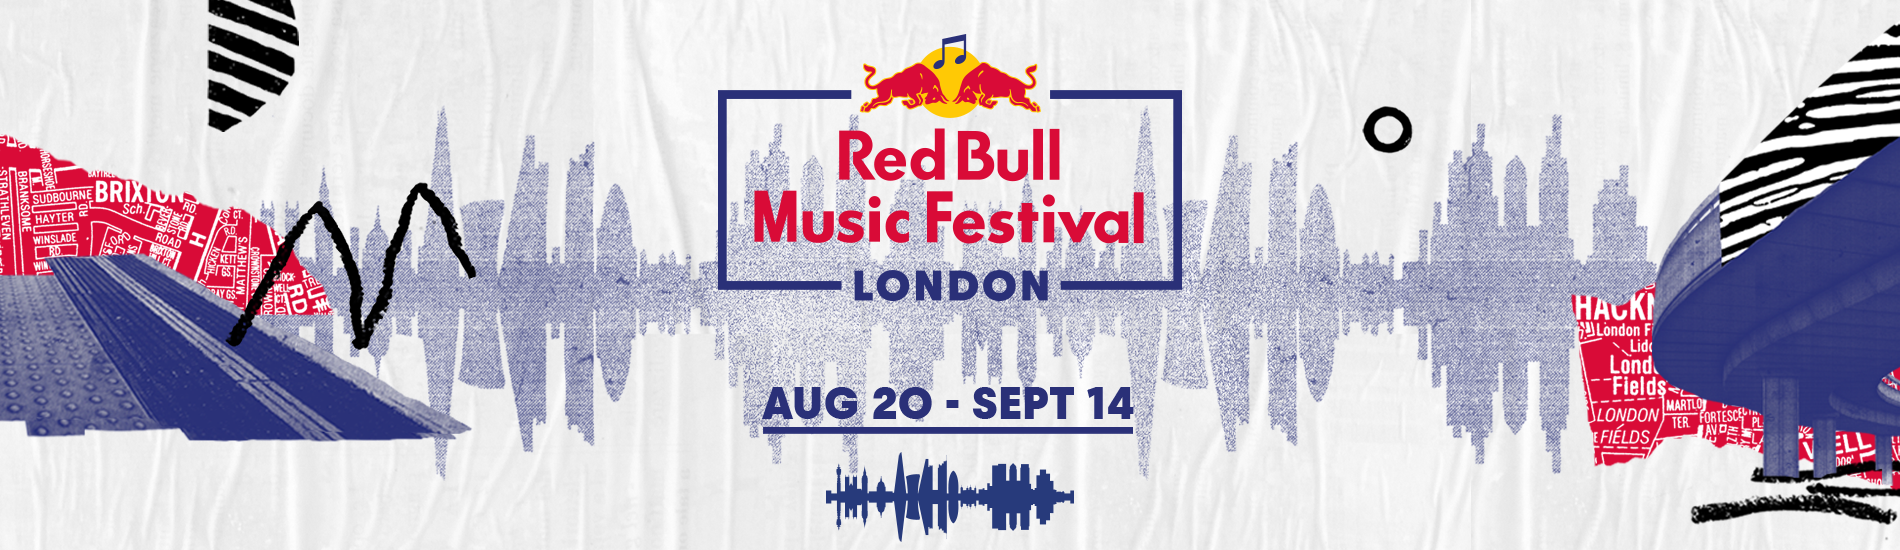 Red Bull Music Festival - London - Aphex Twin - SOLD OUT